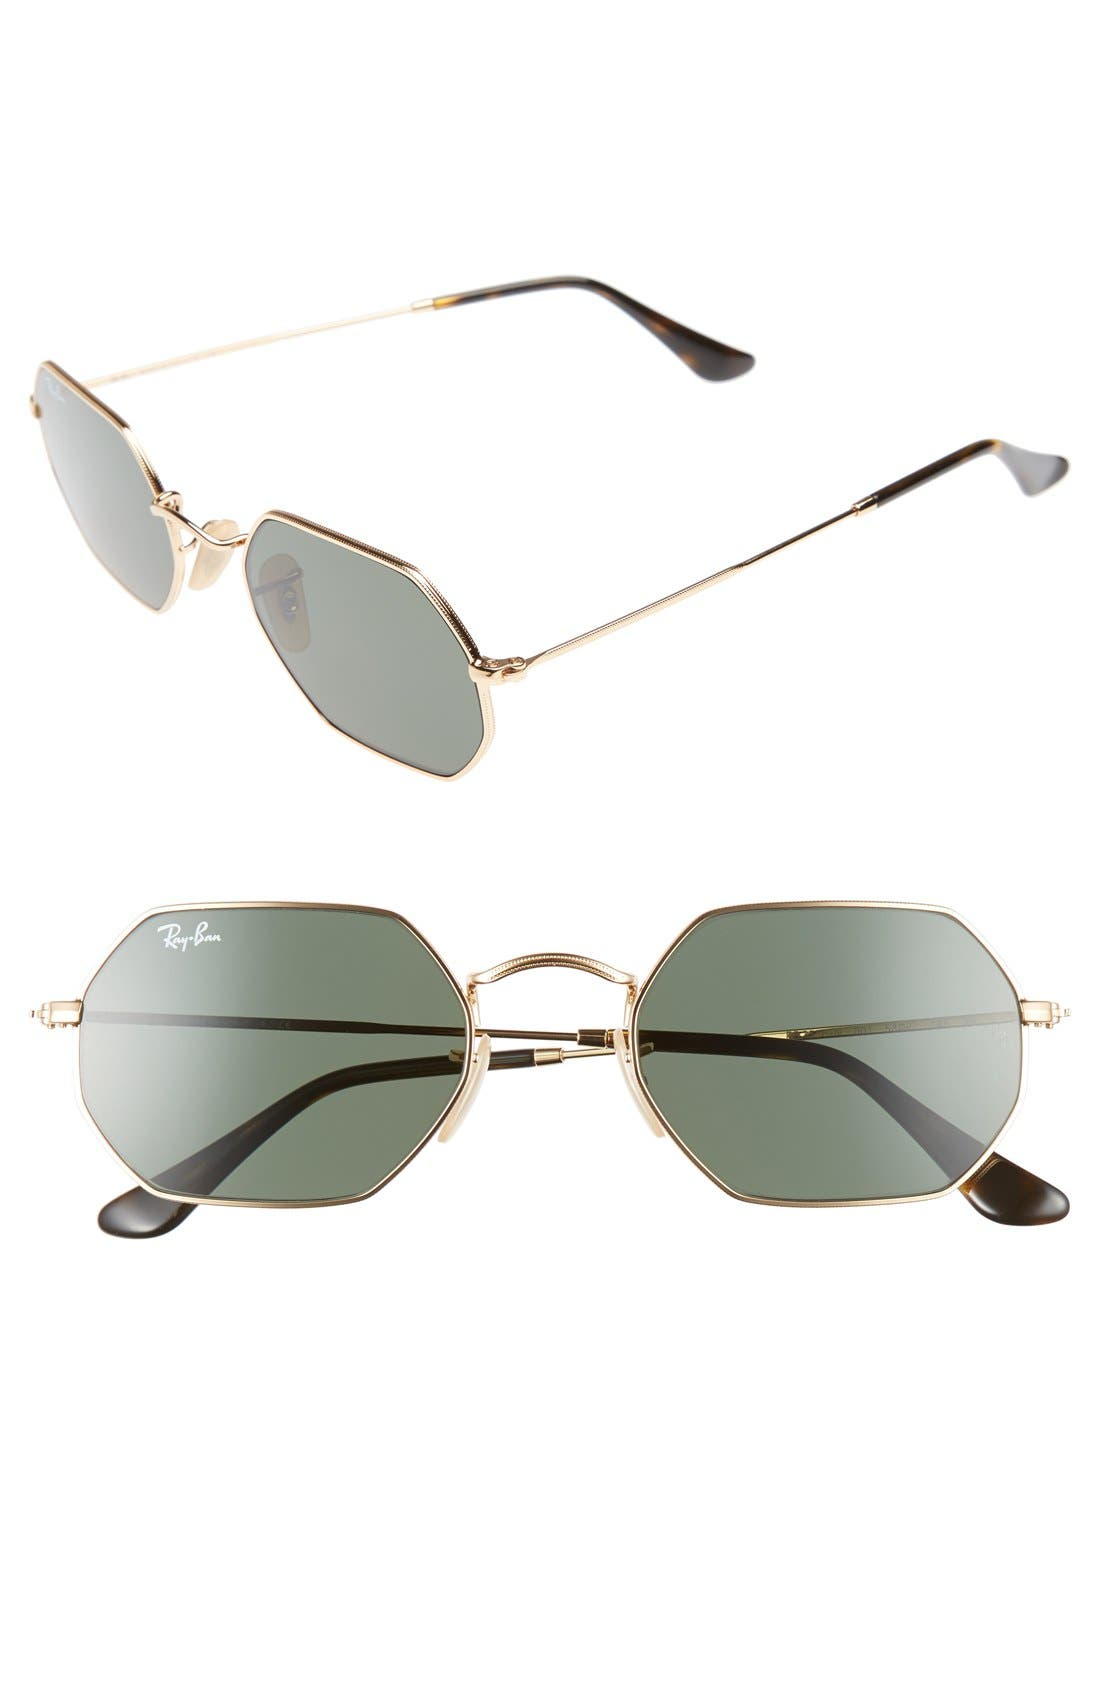 Icons 53mm Sunglasses,                         Main,                         color, 710